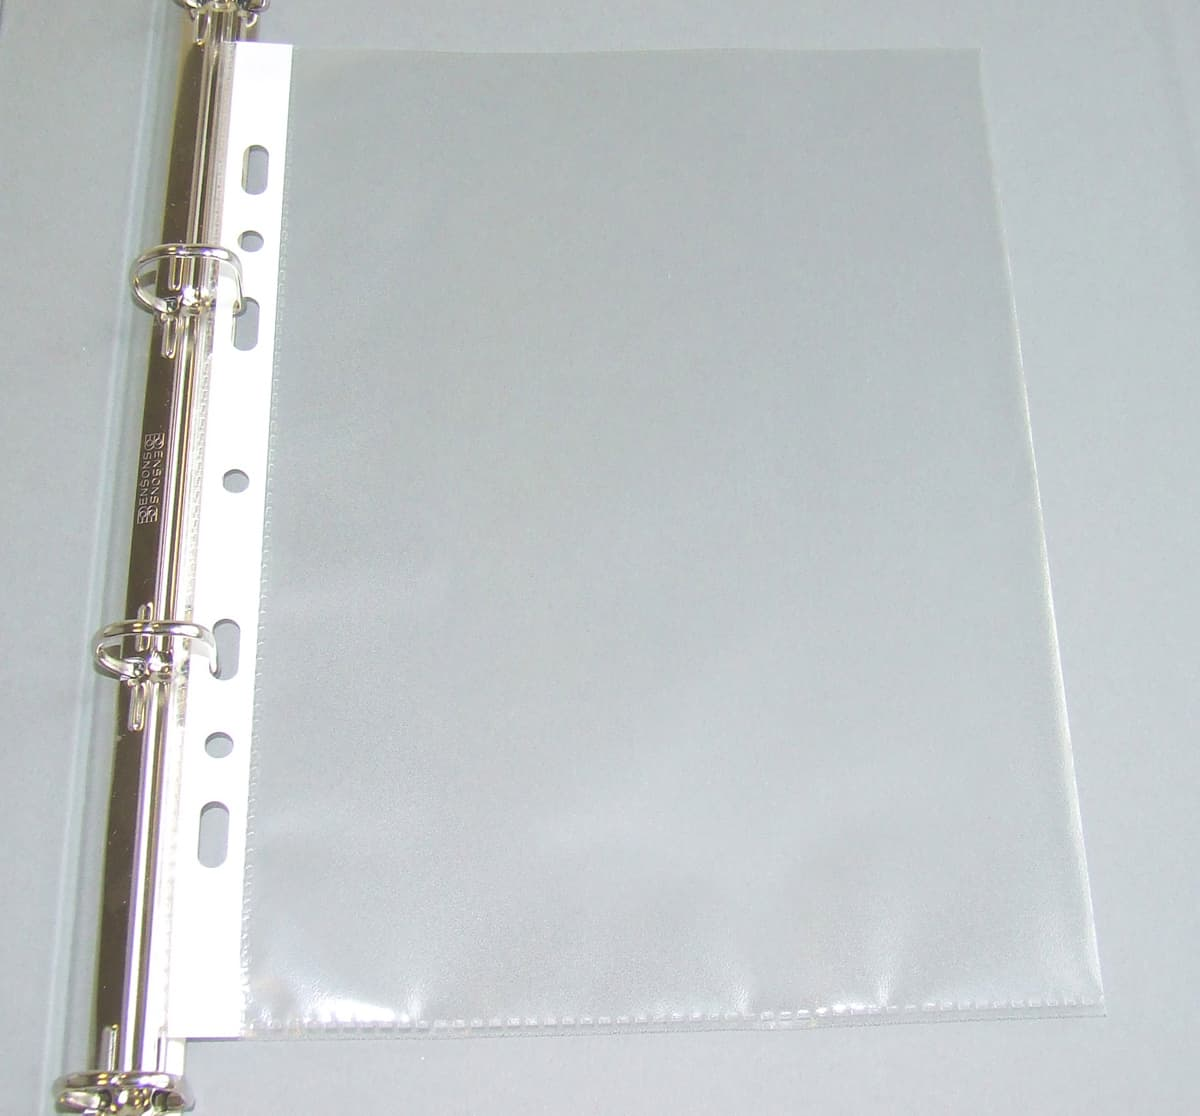 Accessories Ring Binder Pockets, A4 Portrait Example